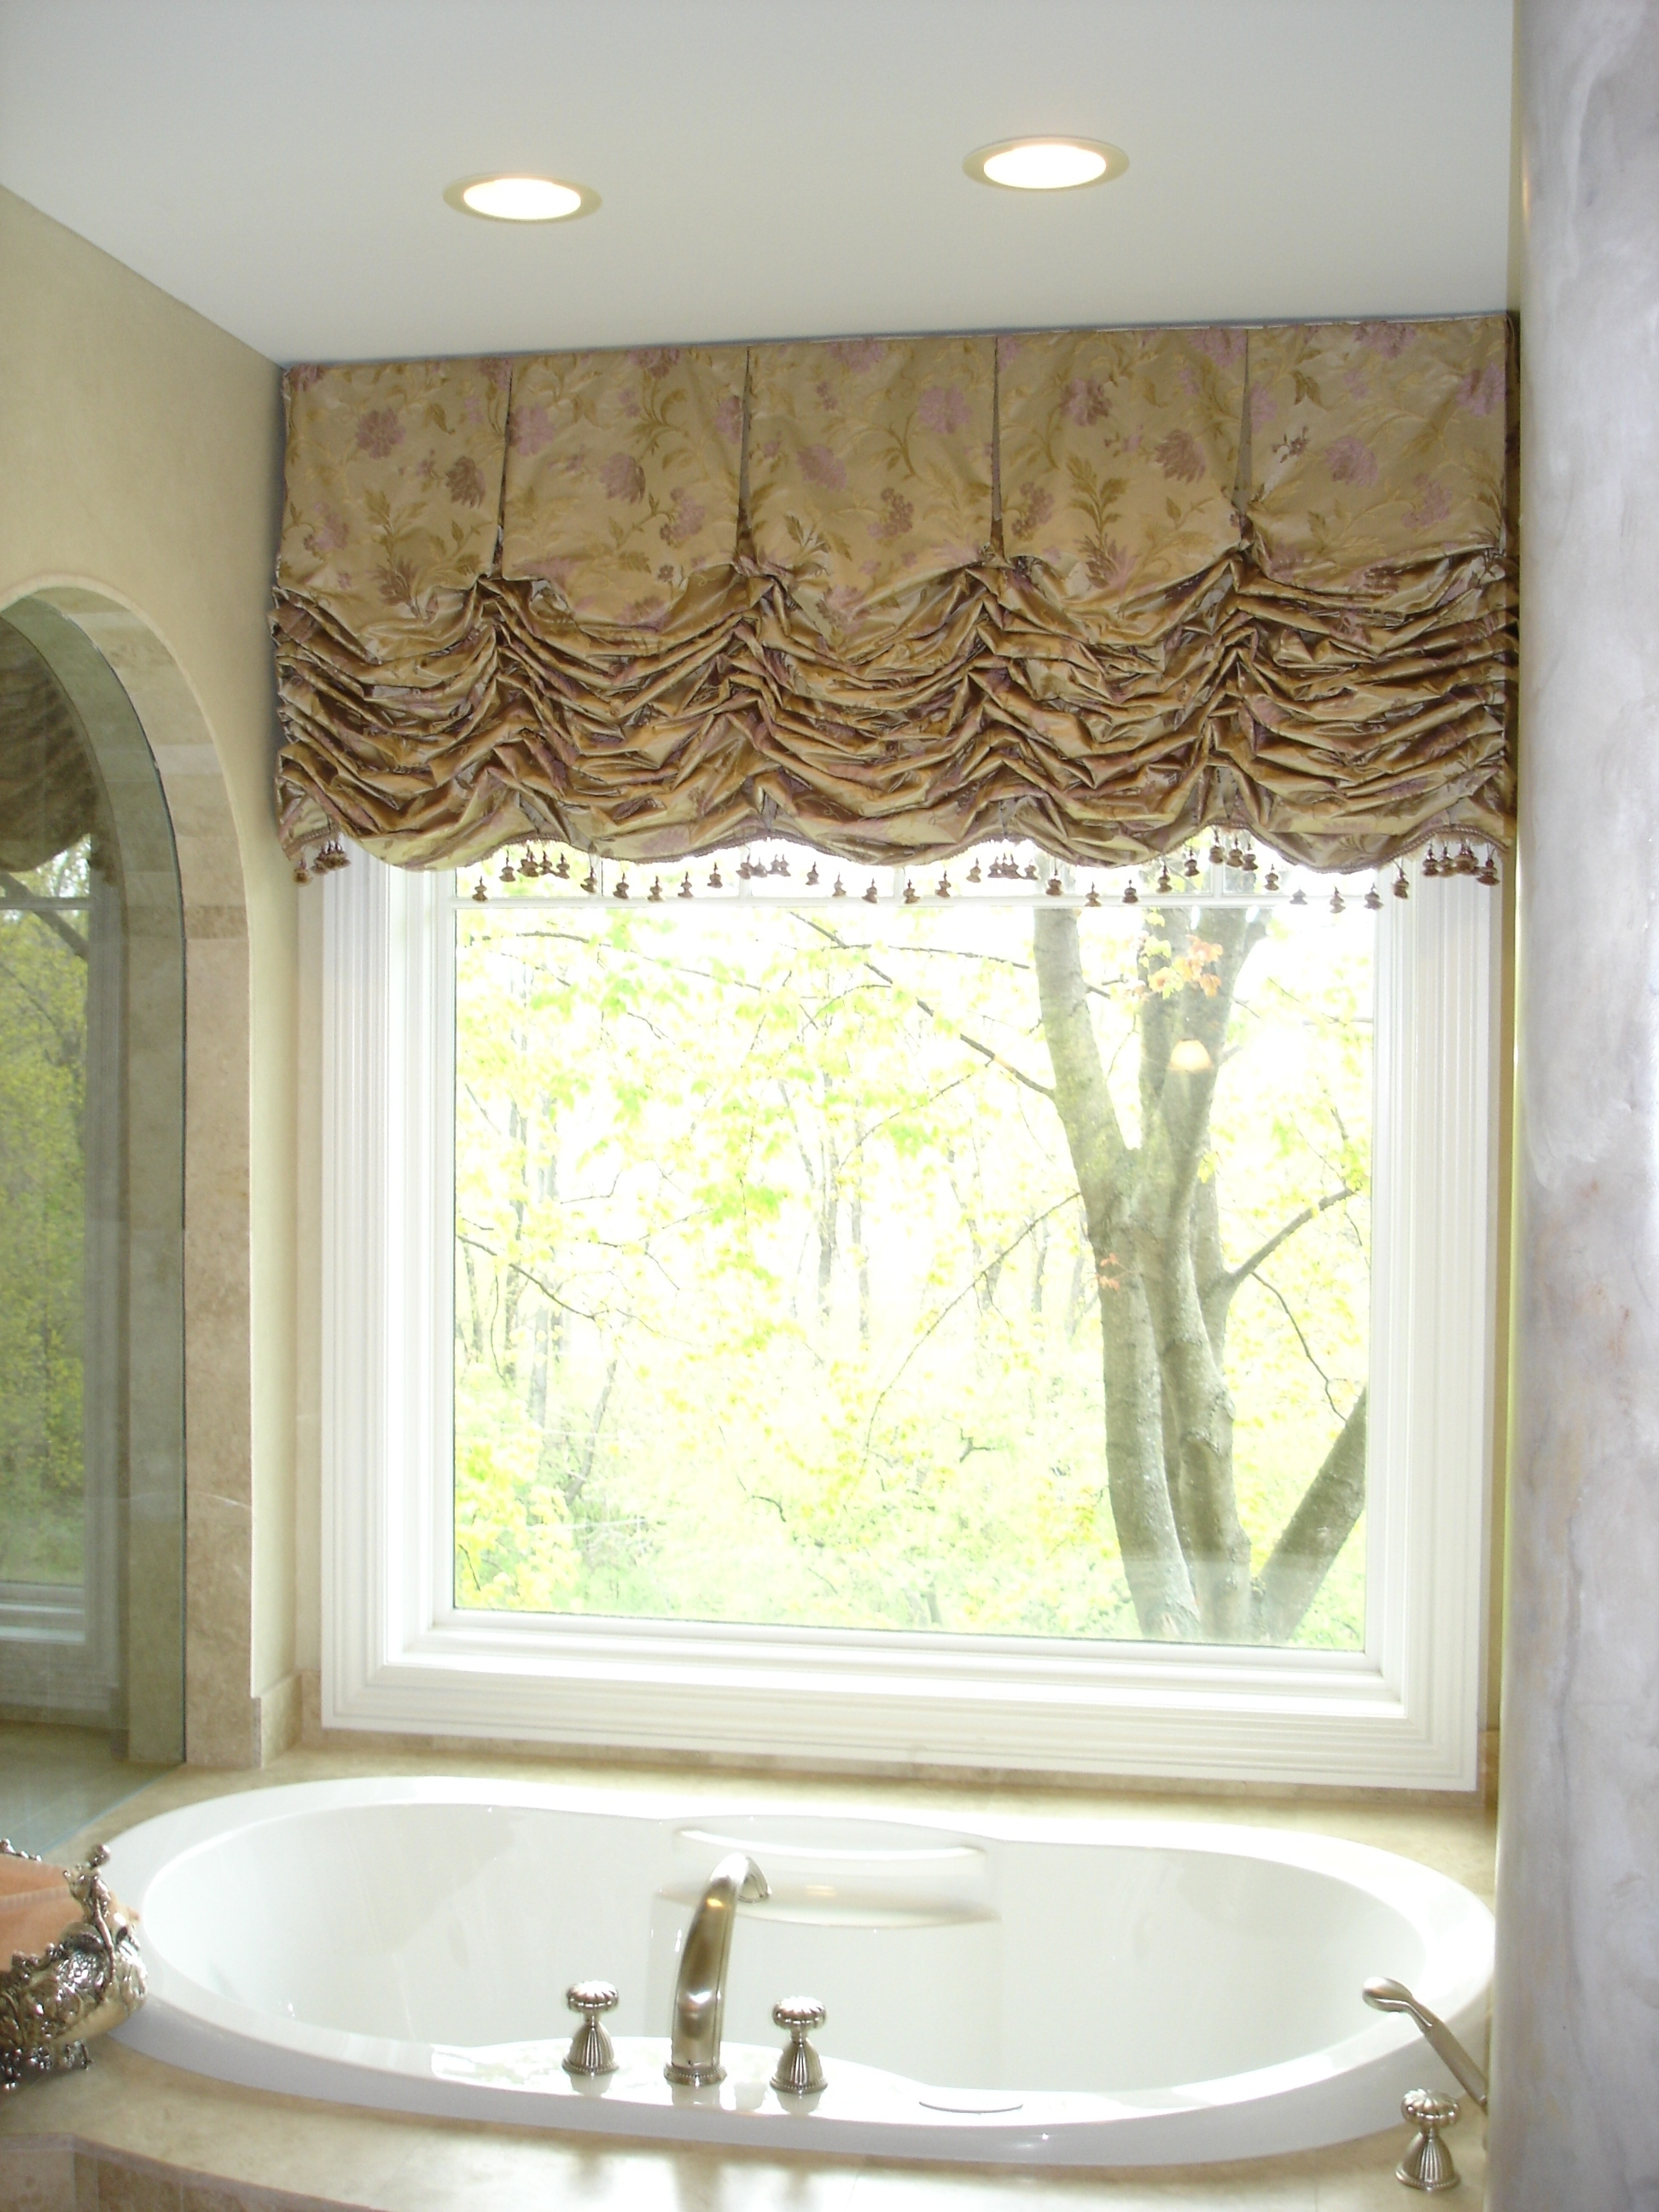 Style and elegance susan 39 s designs Bathroom valances for windows